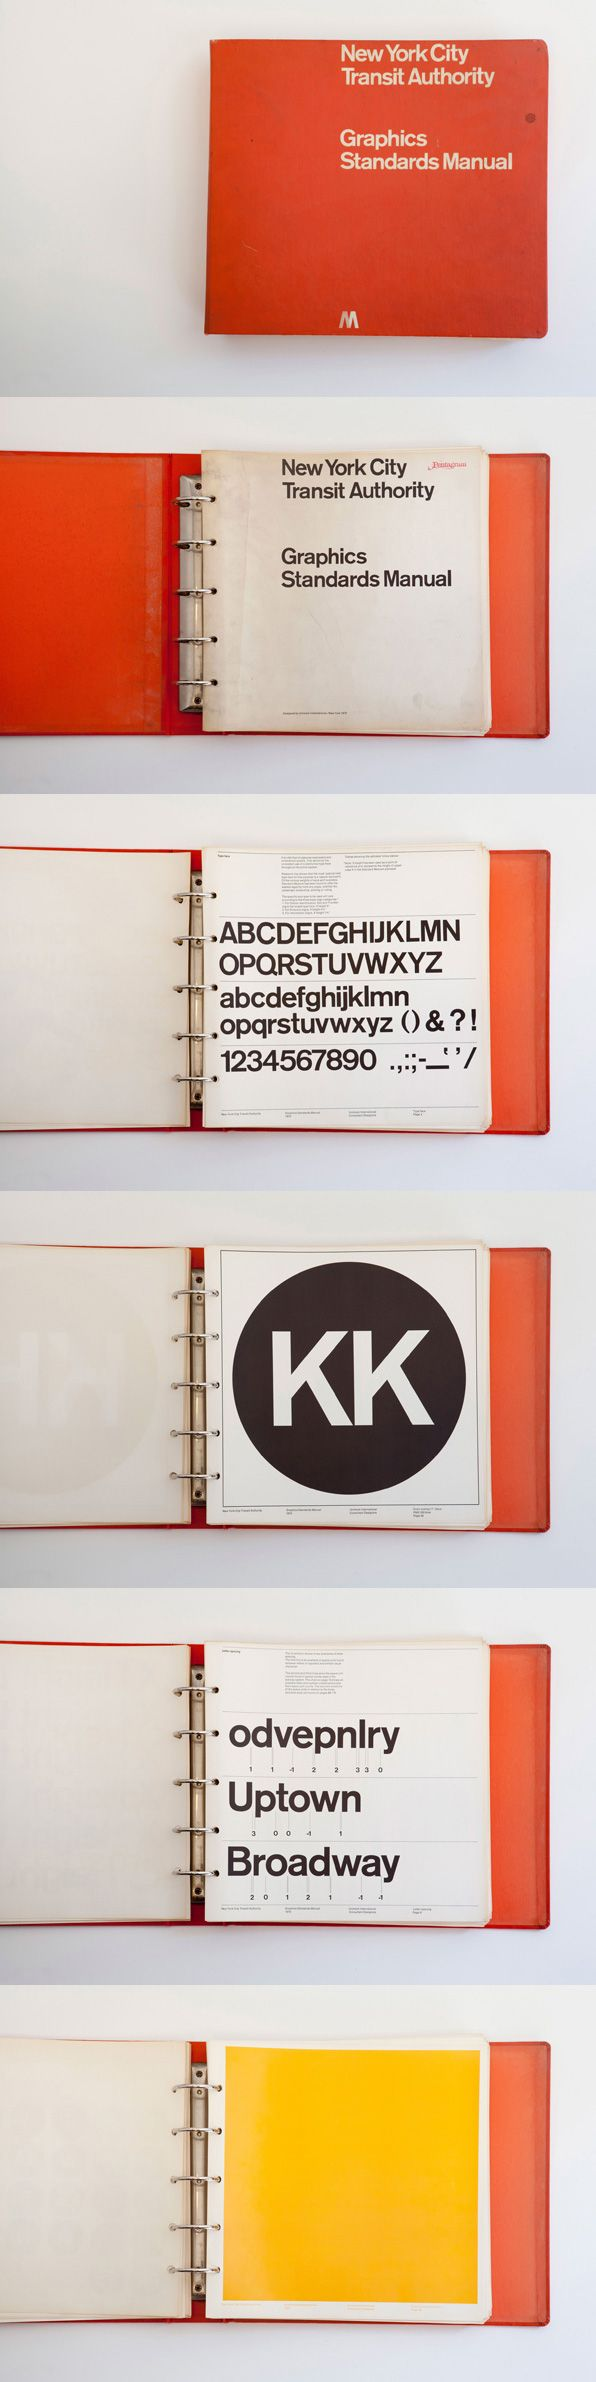 First edition NYCTA Graphics Standards Manual designed by Massimo Vignelli and Bob Noorda of Unimark International (1970) :: http://thestandardsmanual.com